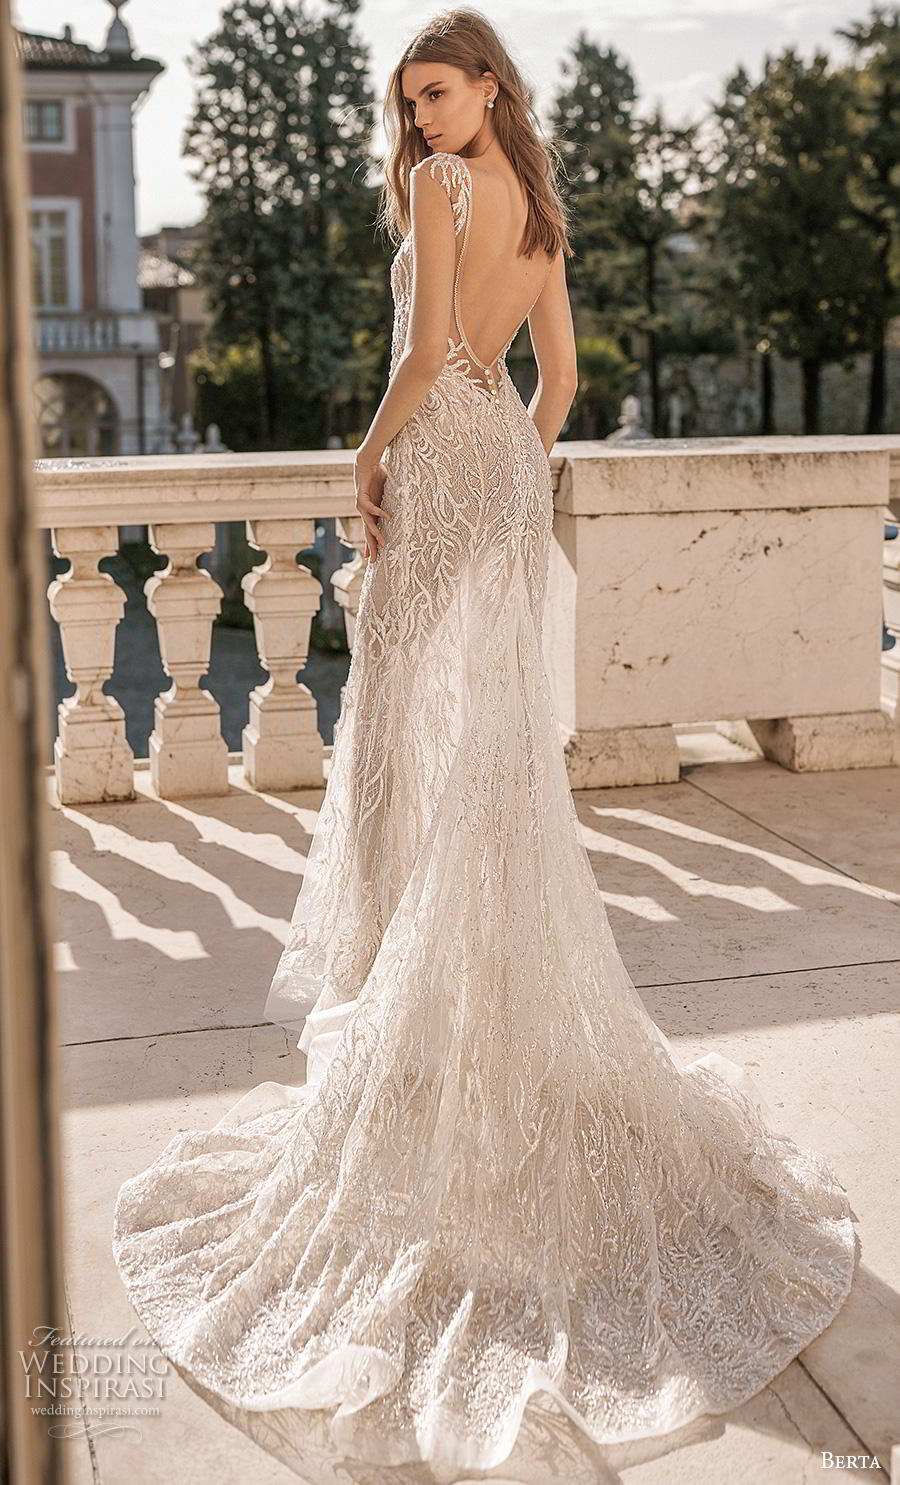 berta 2019 privee bridal cap sleeves deep v neck full embellishment sexy glamorous modified a  line wedding dress low open back backless chapel train (7) bv